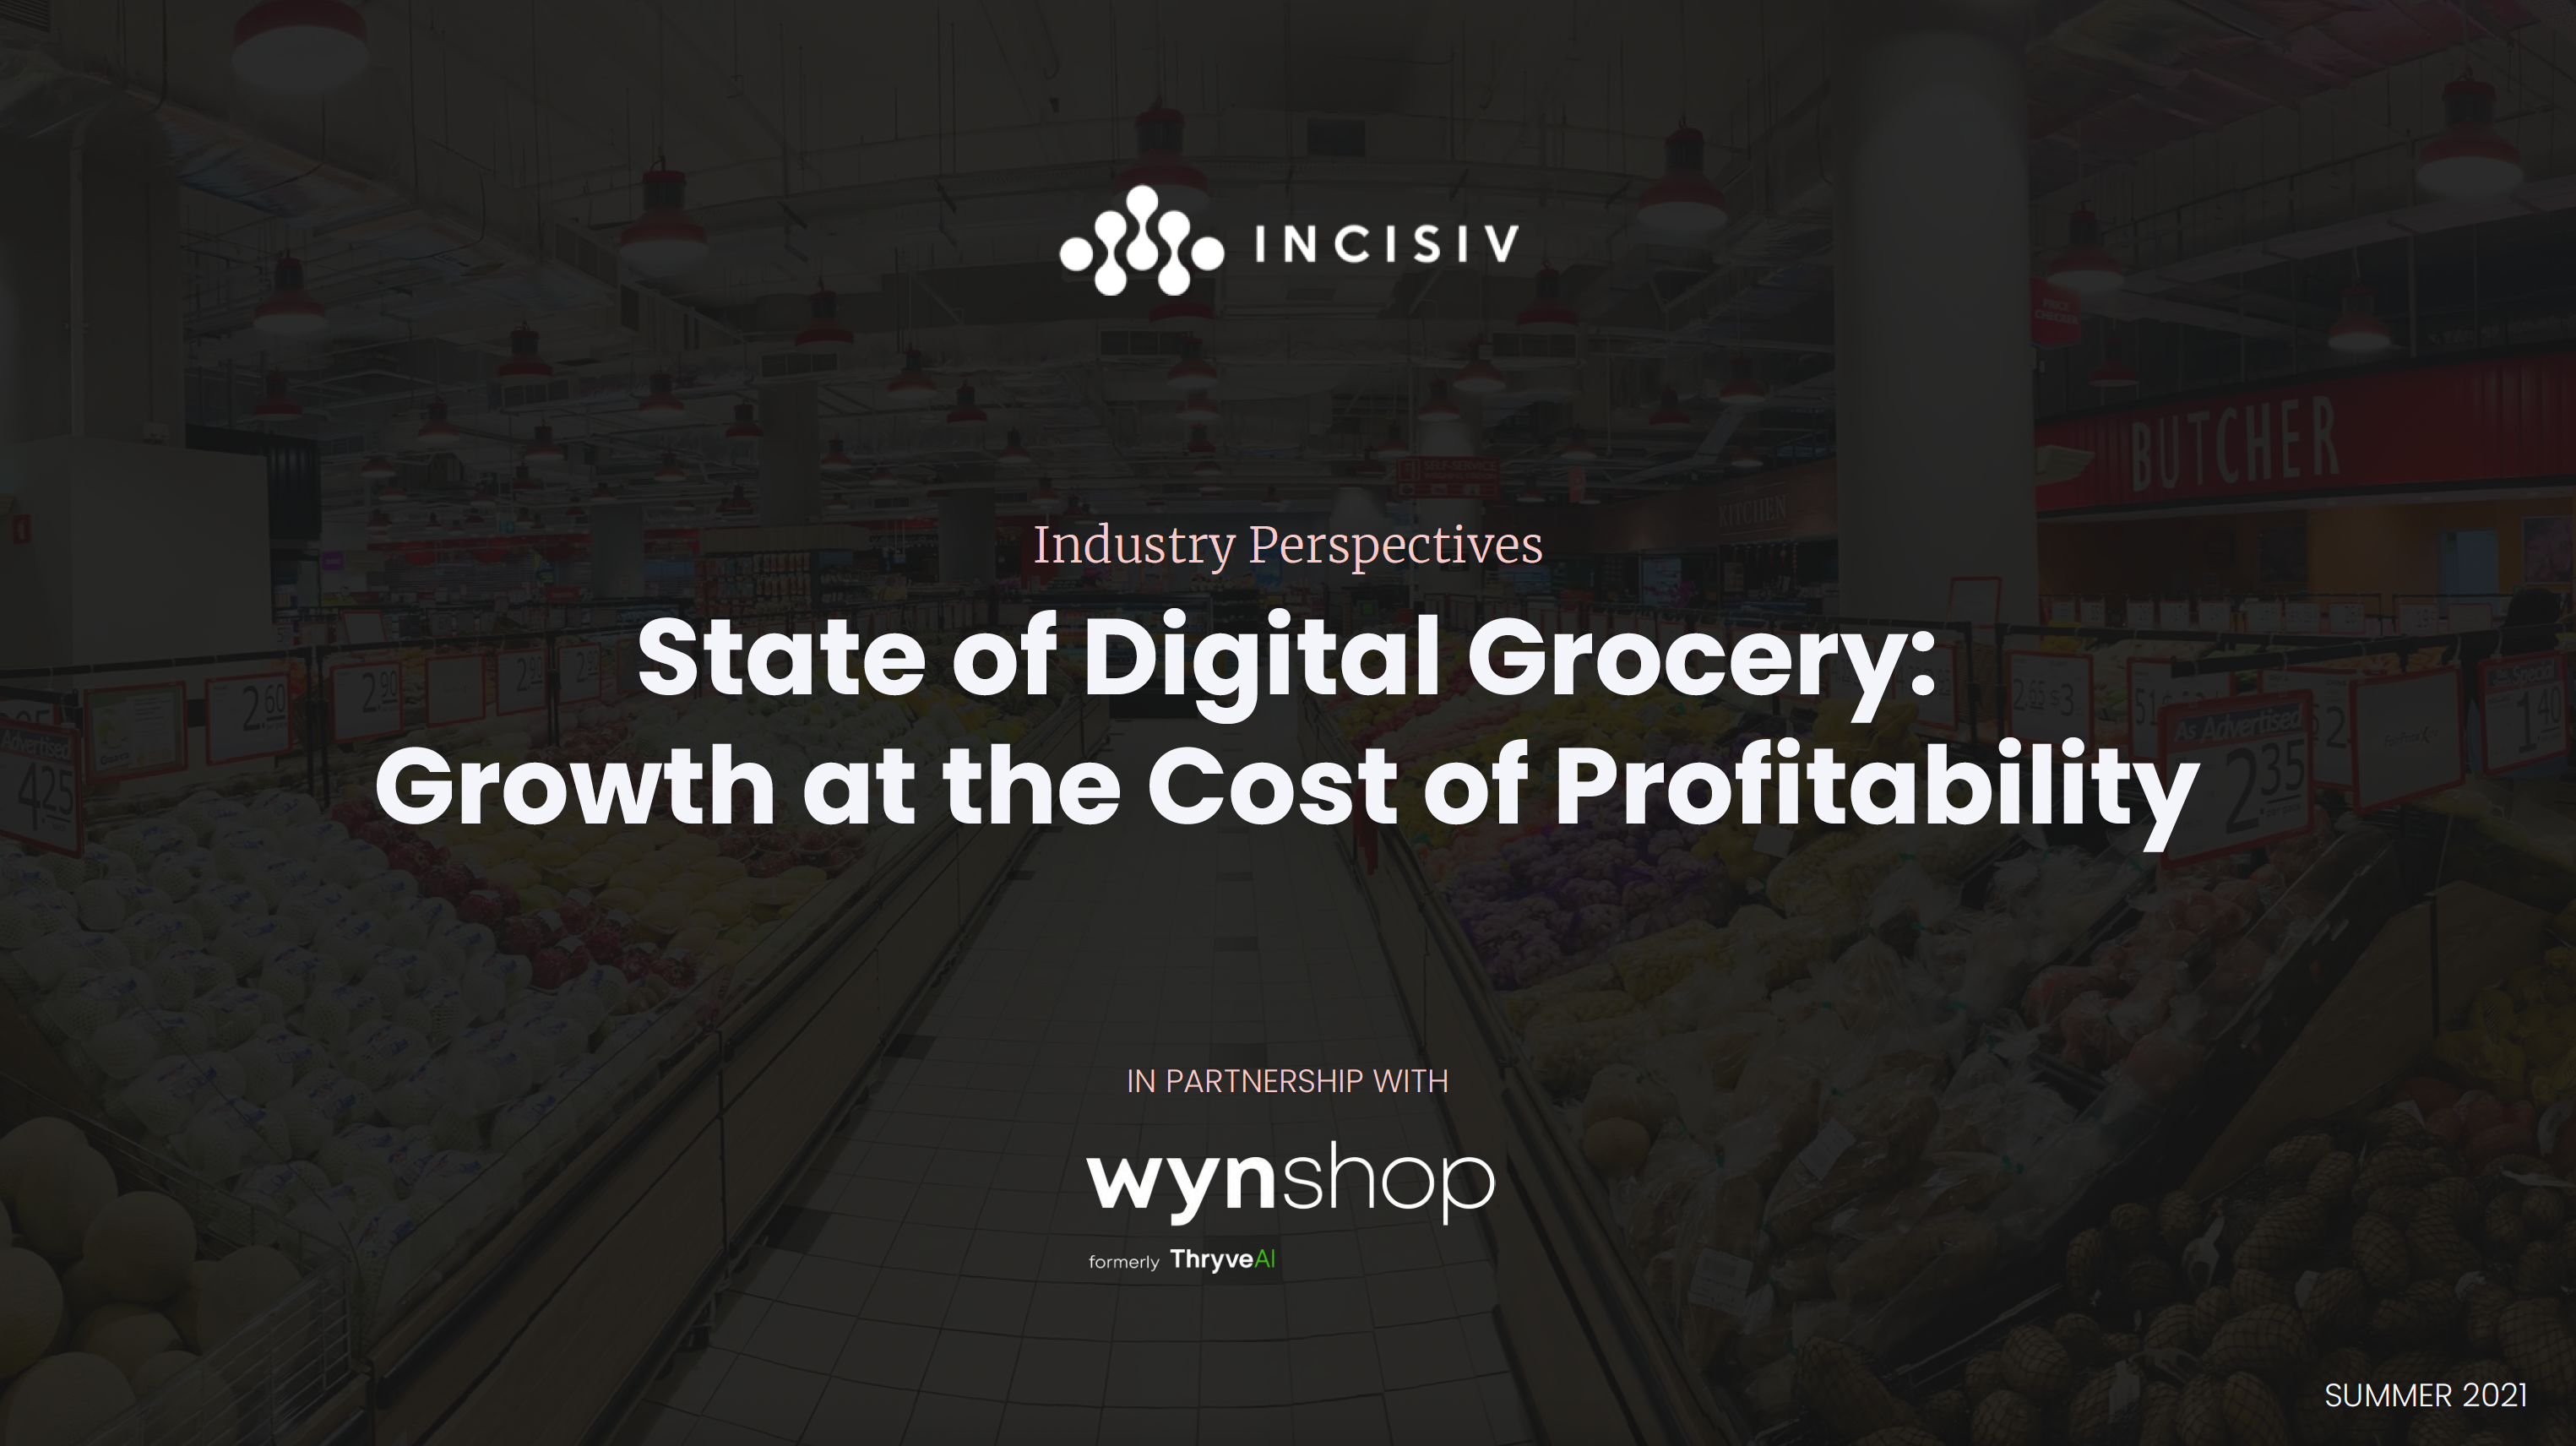 State of Digital Grocery: Growth of the Cost of Profitability